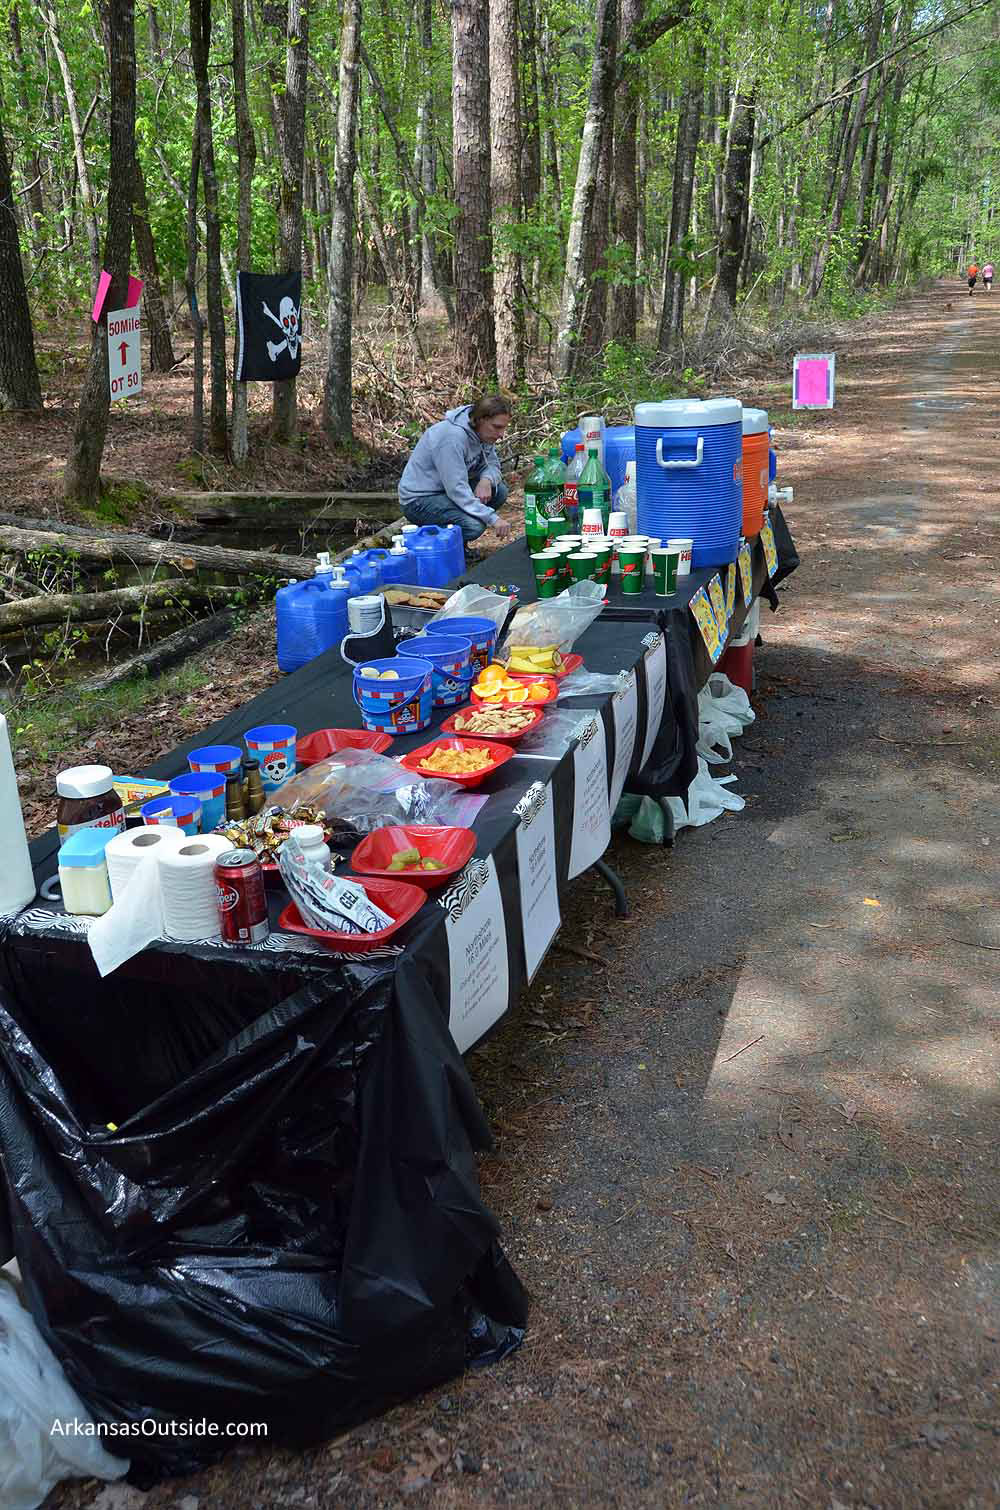 North Shore aid station, complete with pirates.